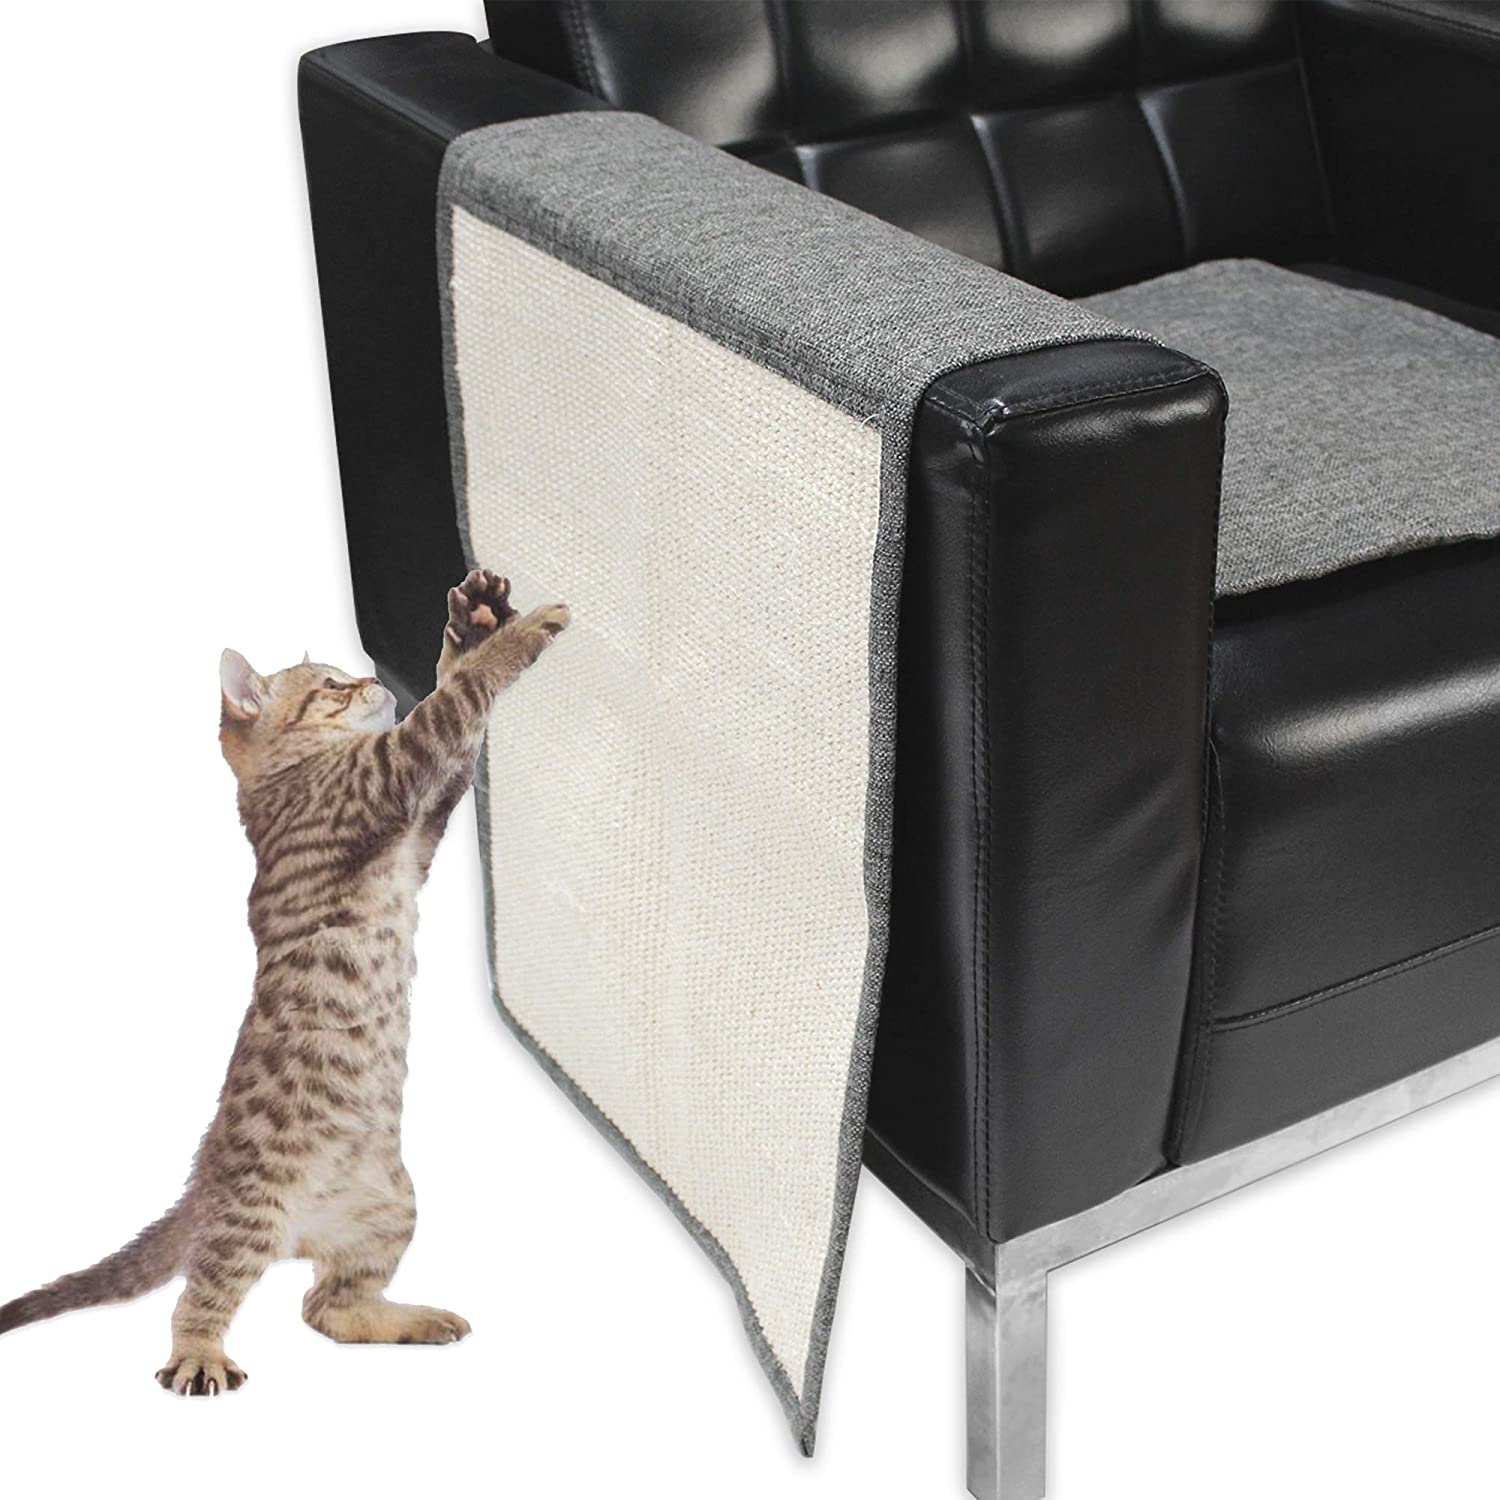 Lovinouse Cat Scratching Mat, Sisal Sofa Shield, 2 in 1 Use Cat Scratch Pad and Furniture Protectors, Durable and Washable